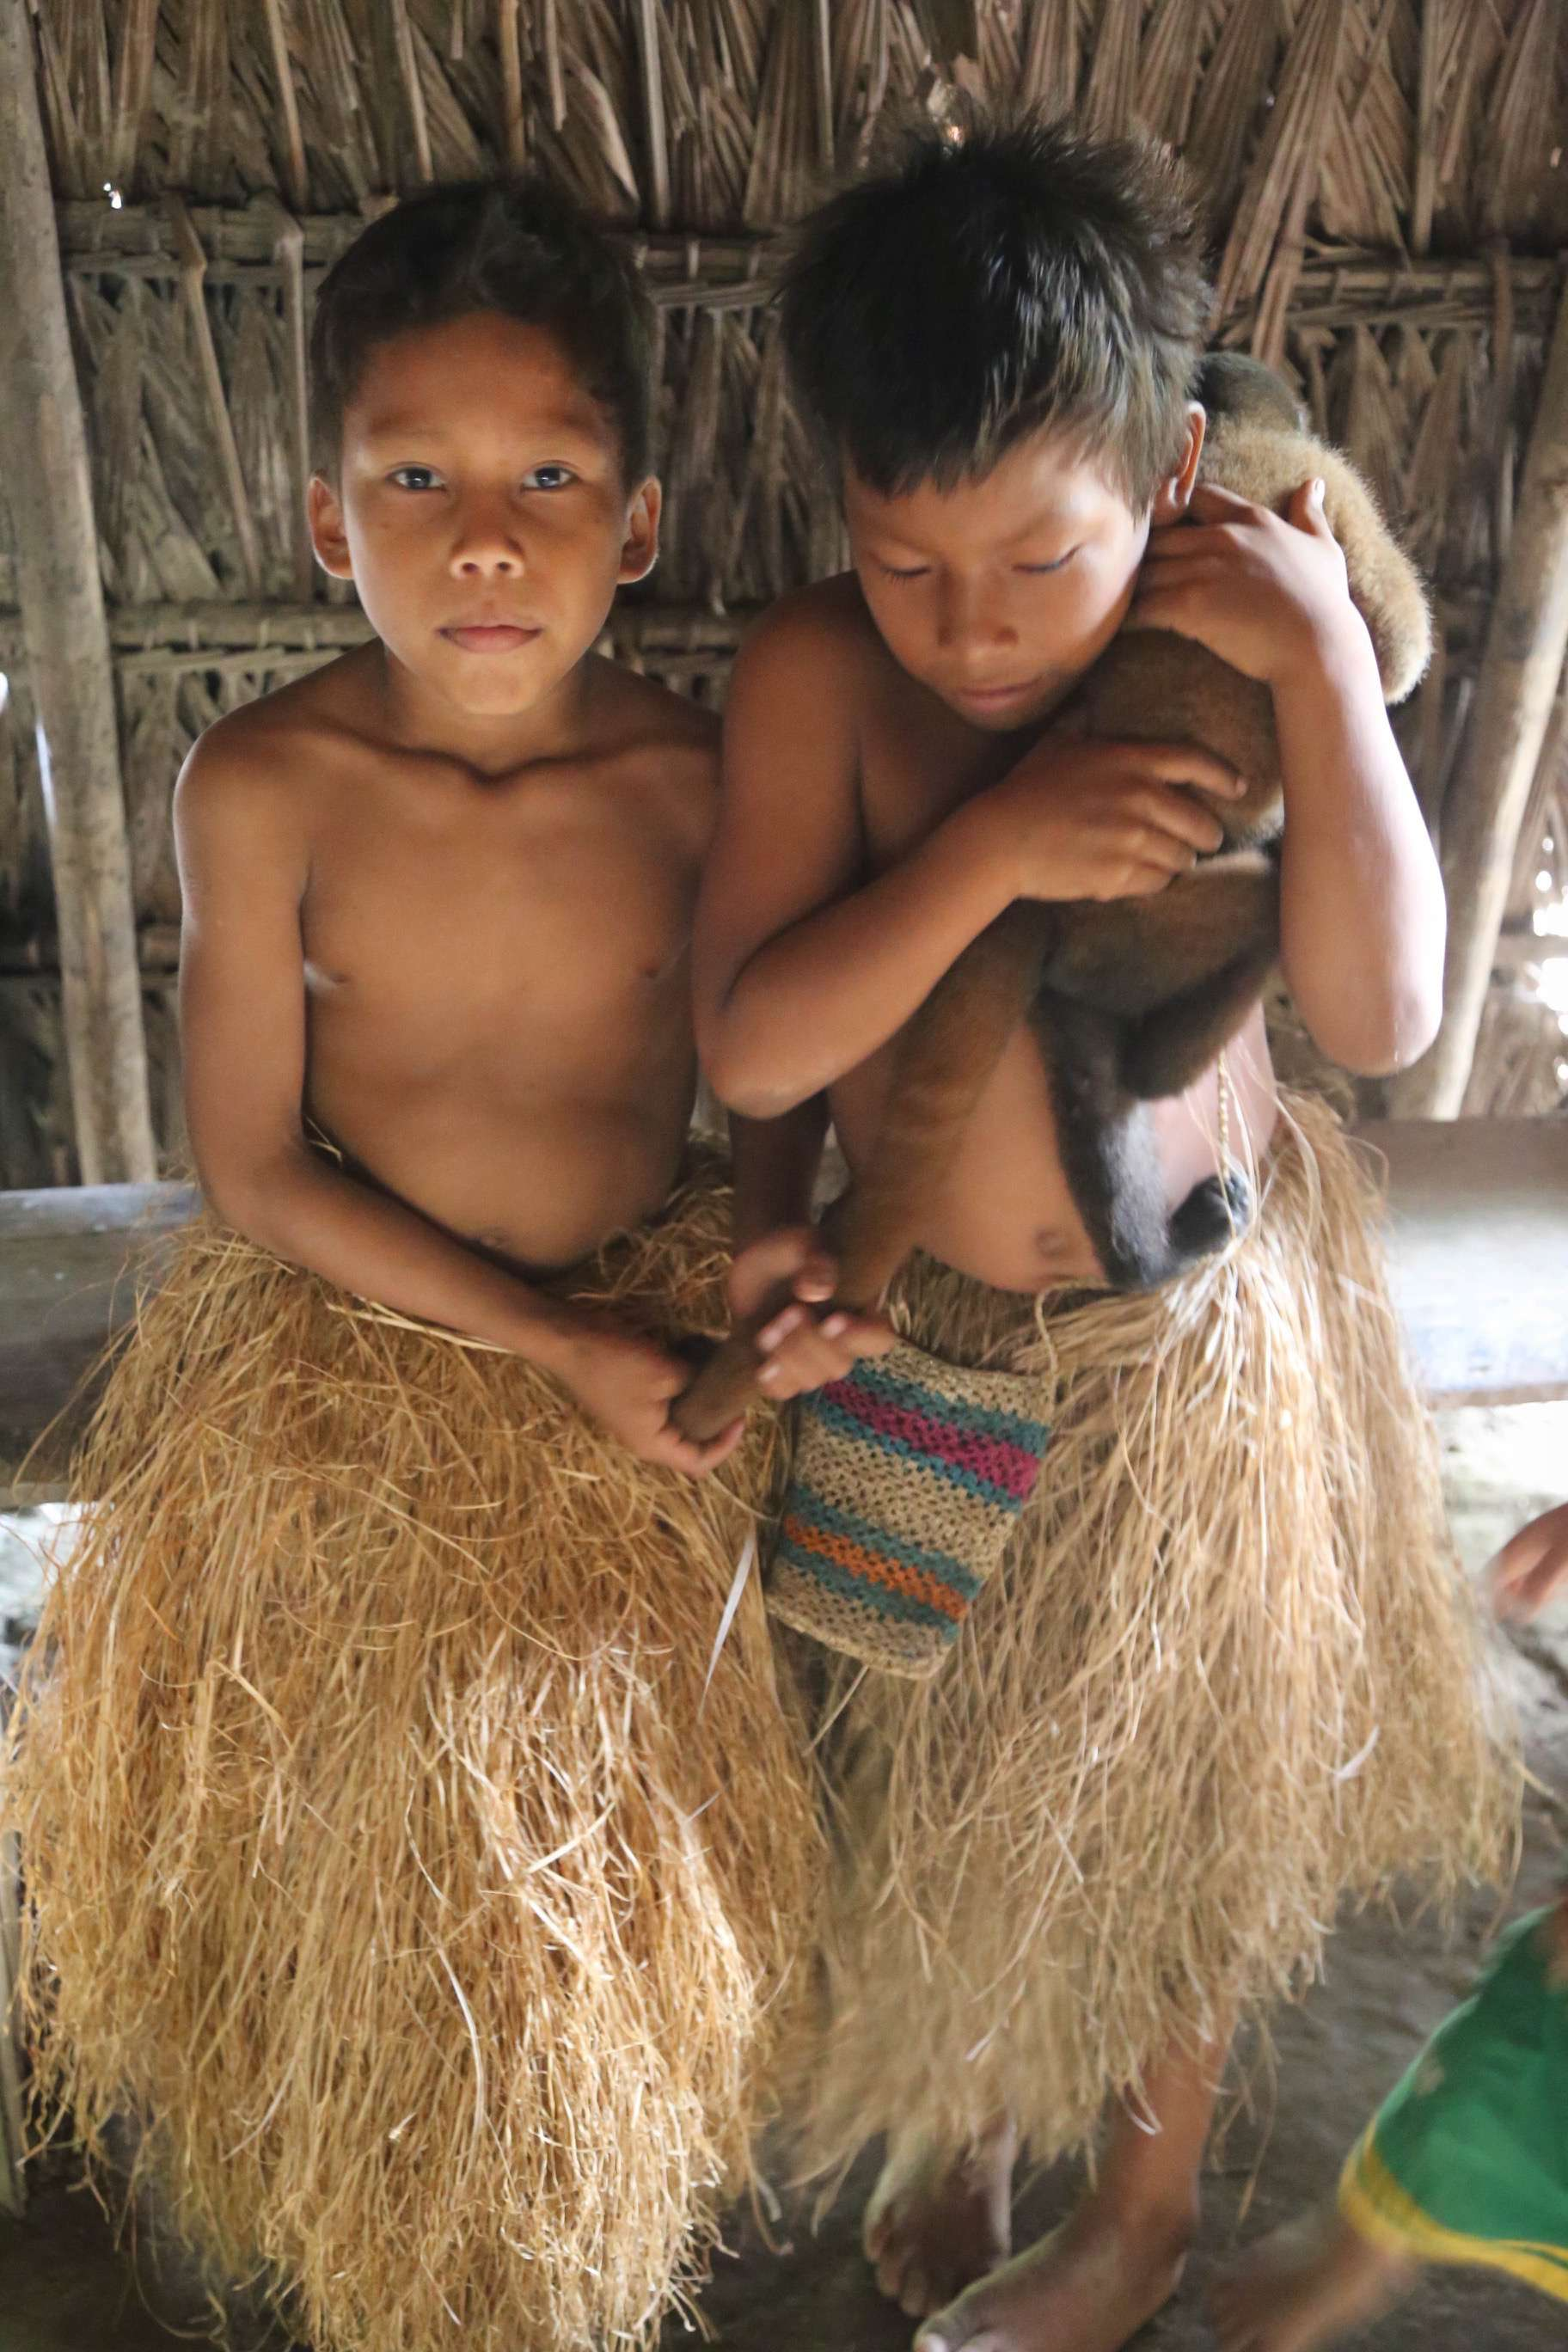 All kids like to have pets and the Yagua have monkeys, sloth and other creatures to play with.